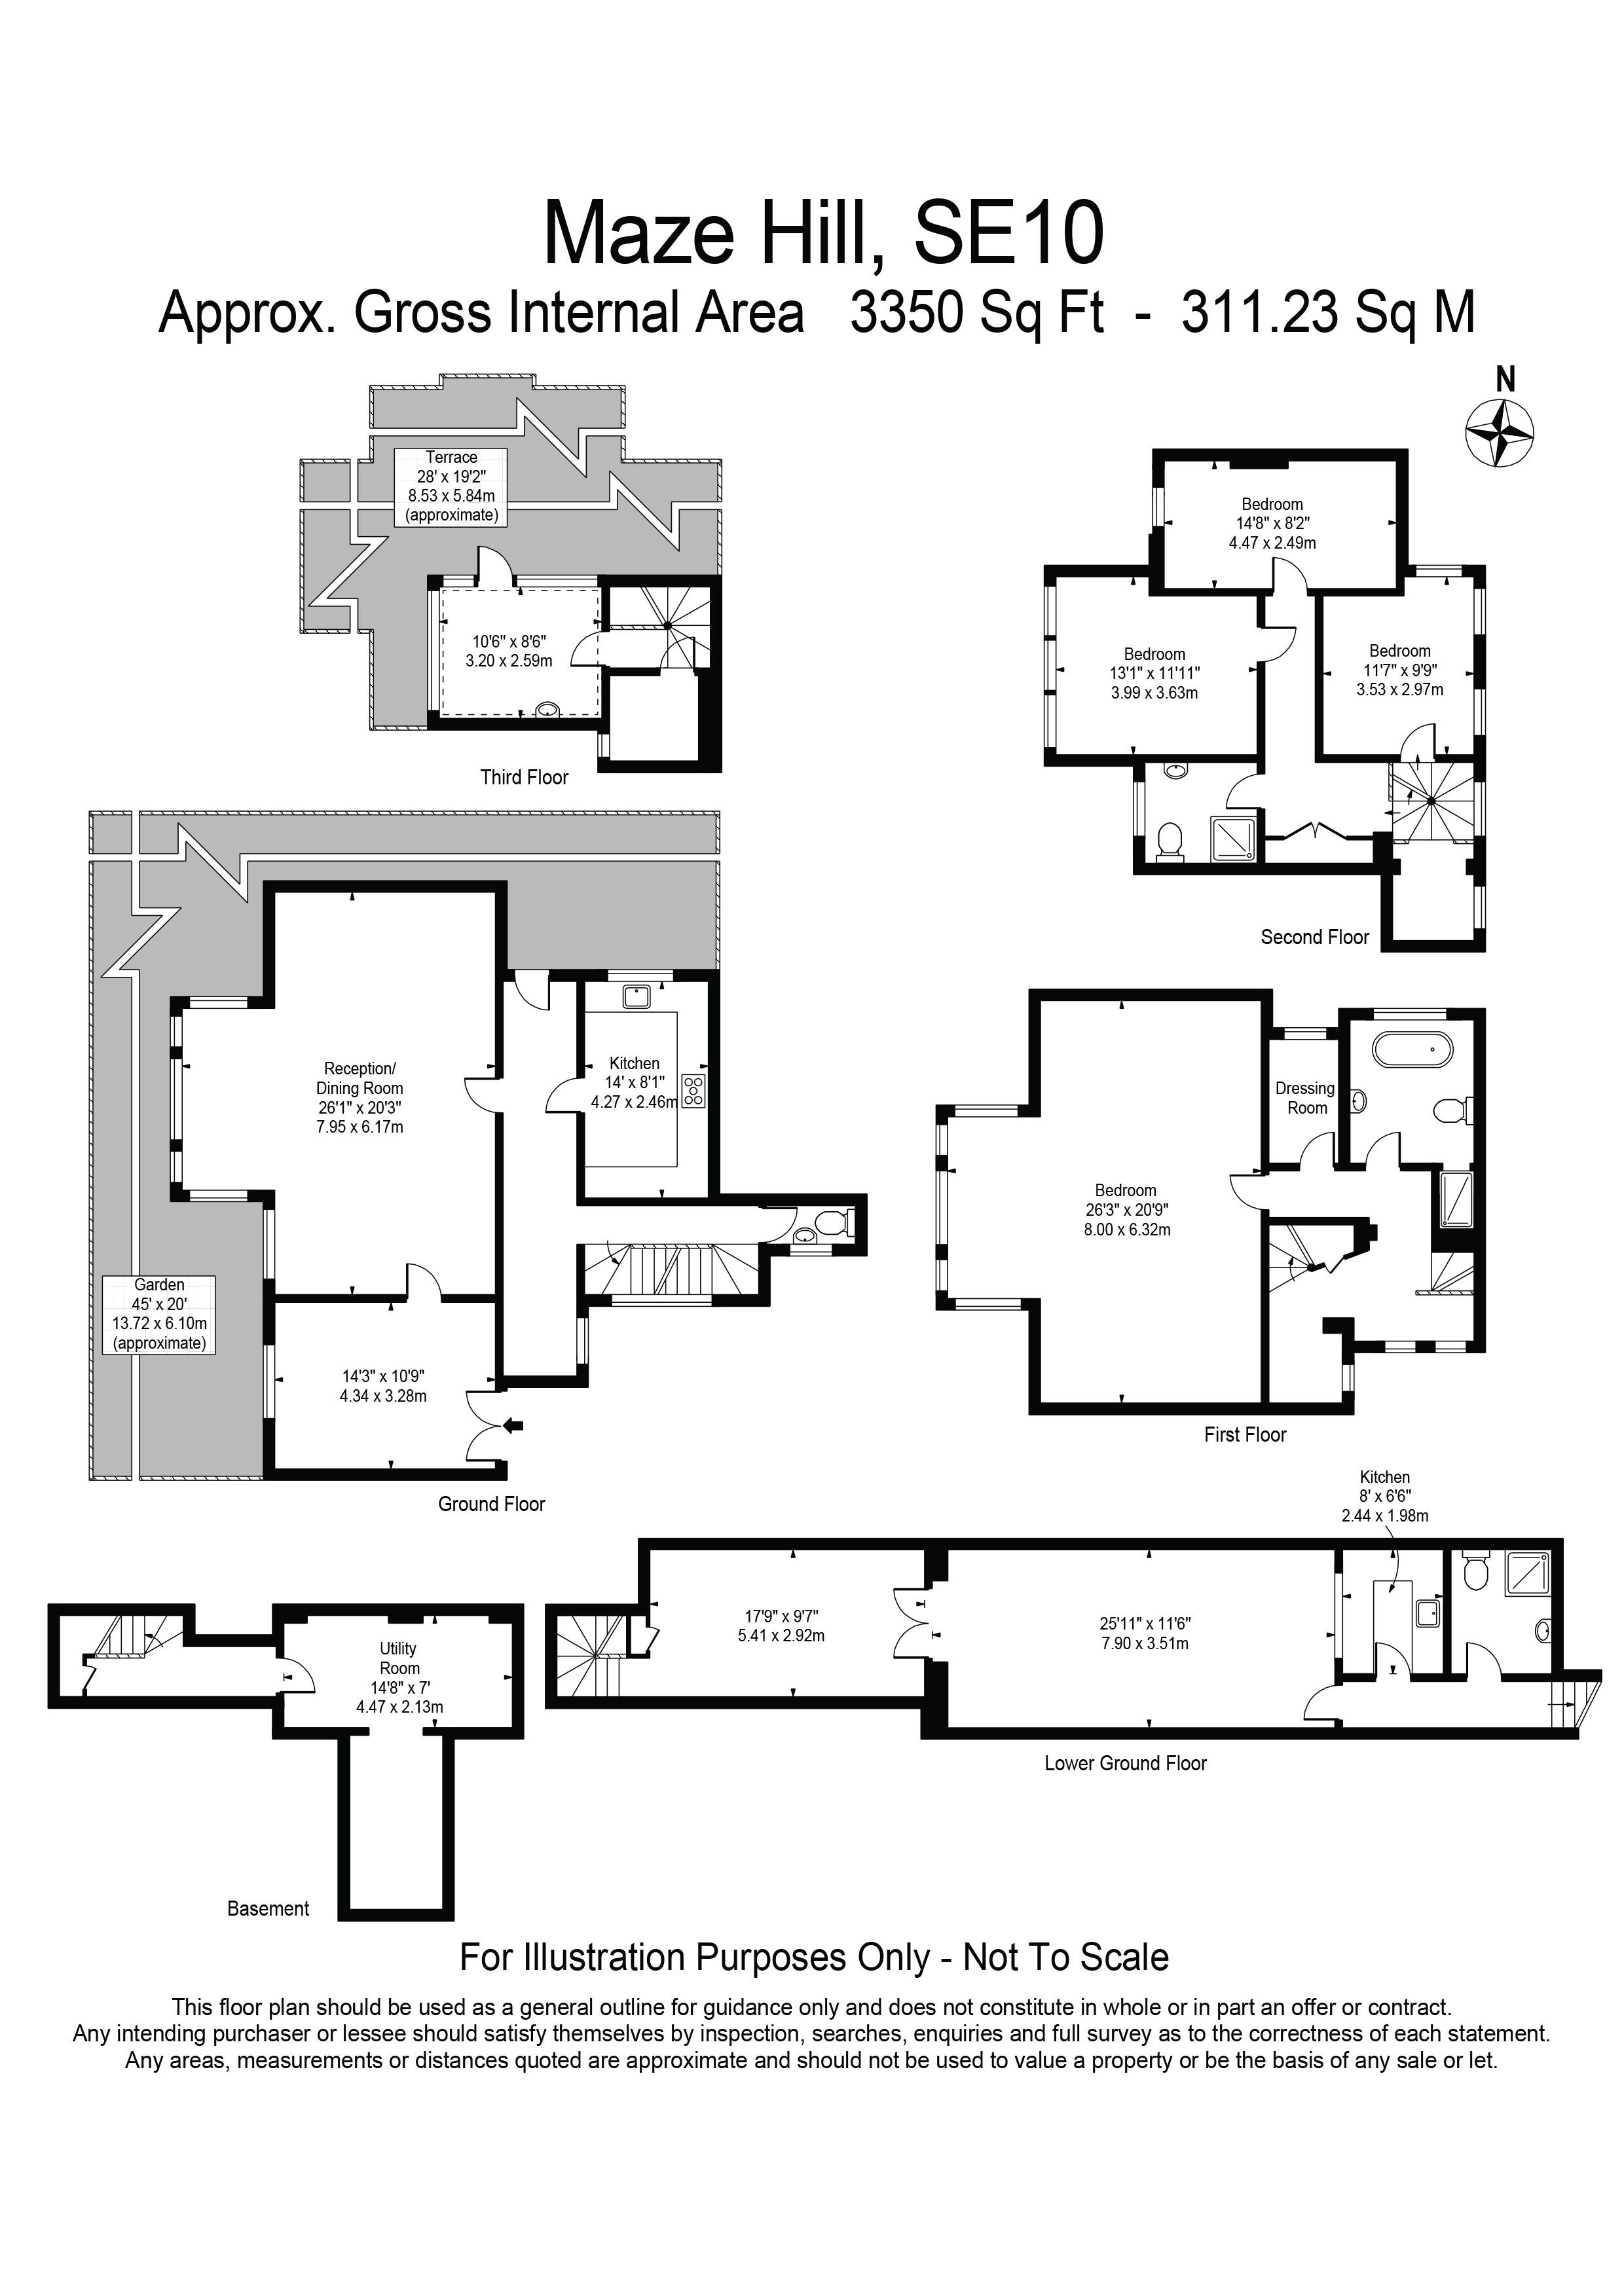 Gatwick Airport Floor Plan Maze Hill London Se10 4 Bedroom Property For Sale